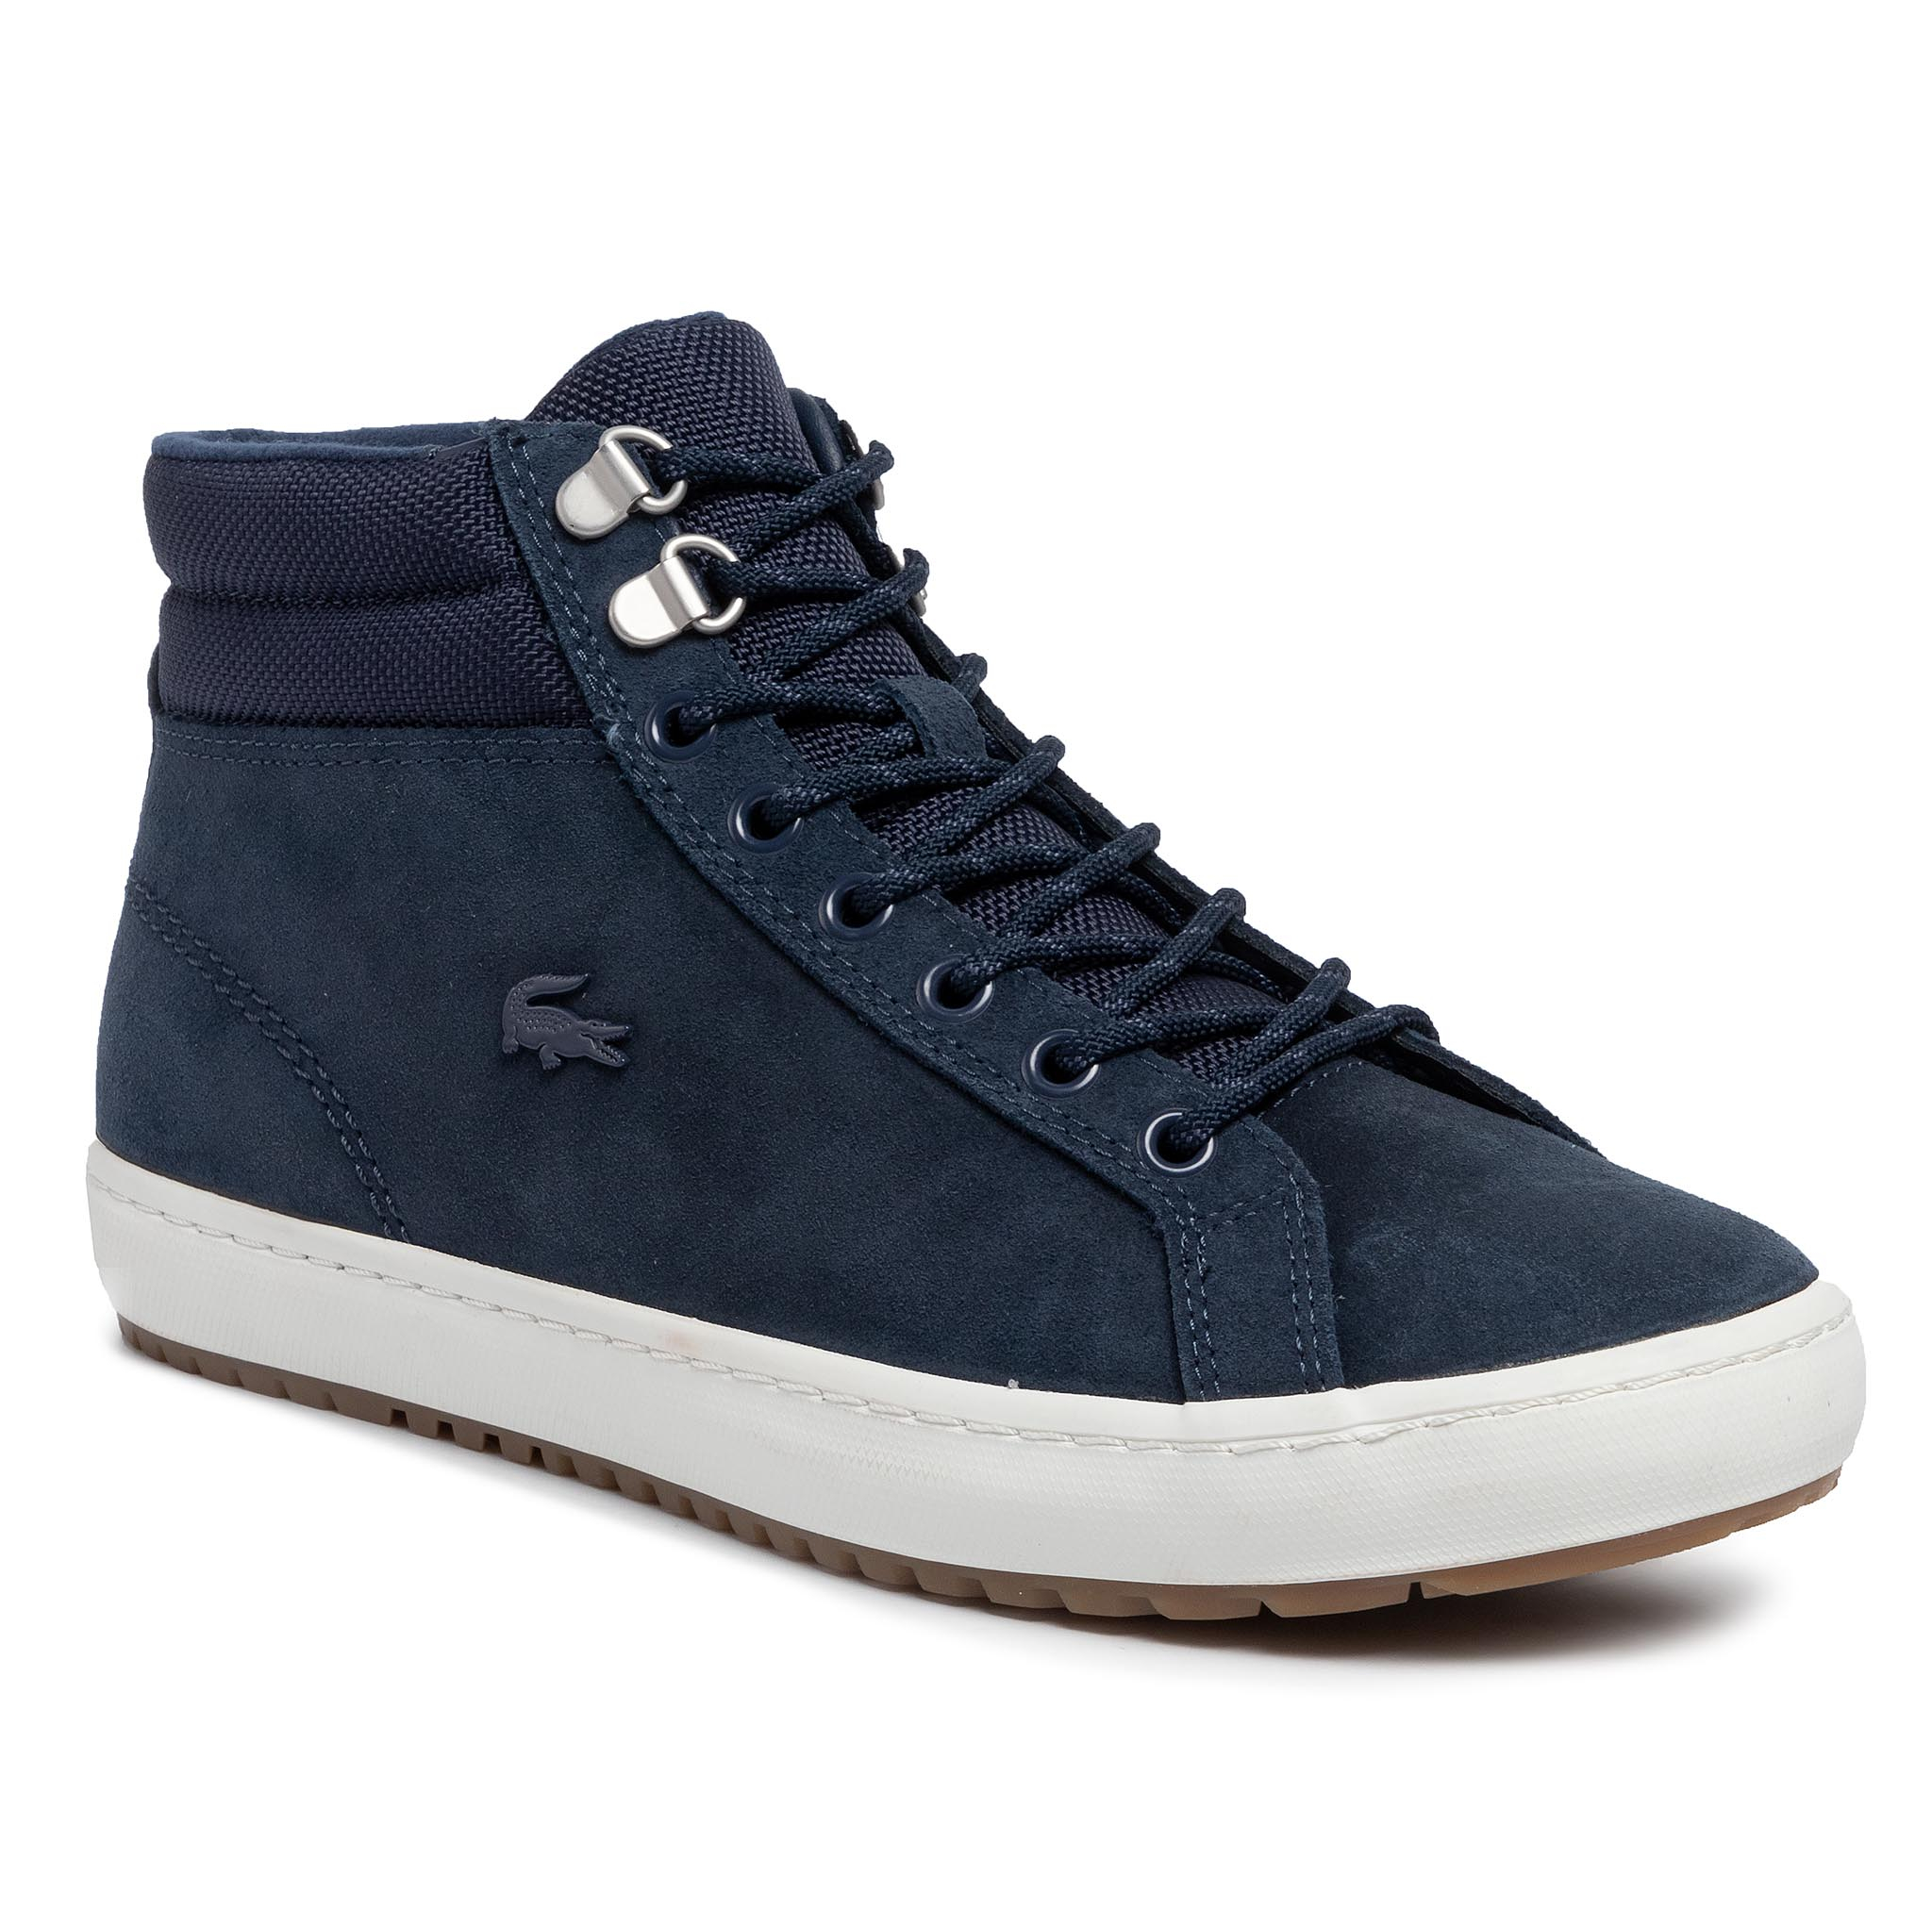 Sneakers LACOSTE - Straightset Insulac 3191 Cma 738CMA0011J18 Nvy/Off Wht